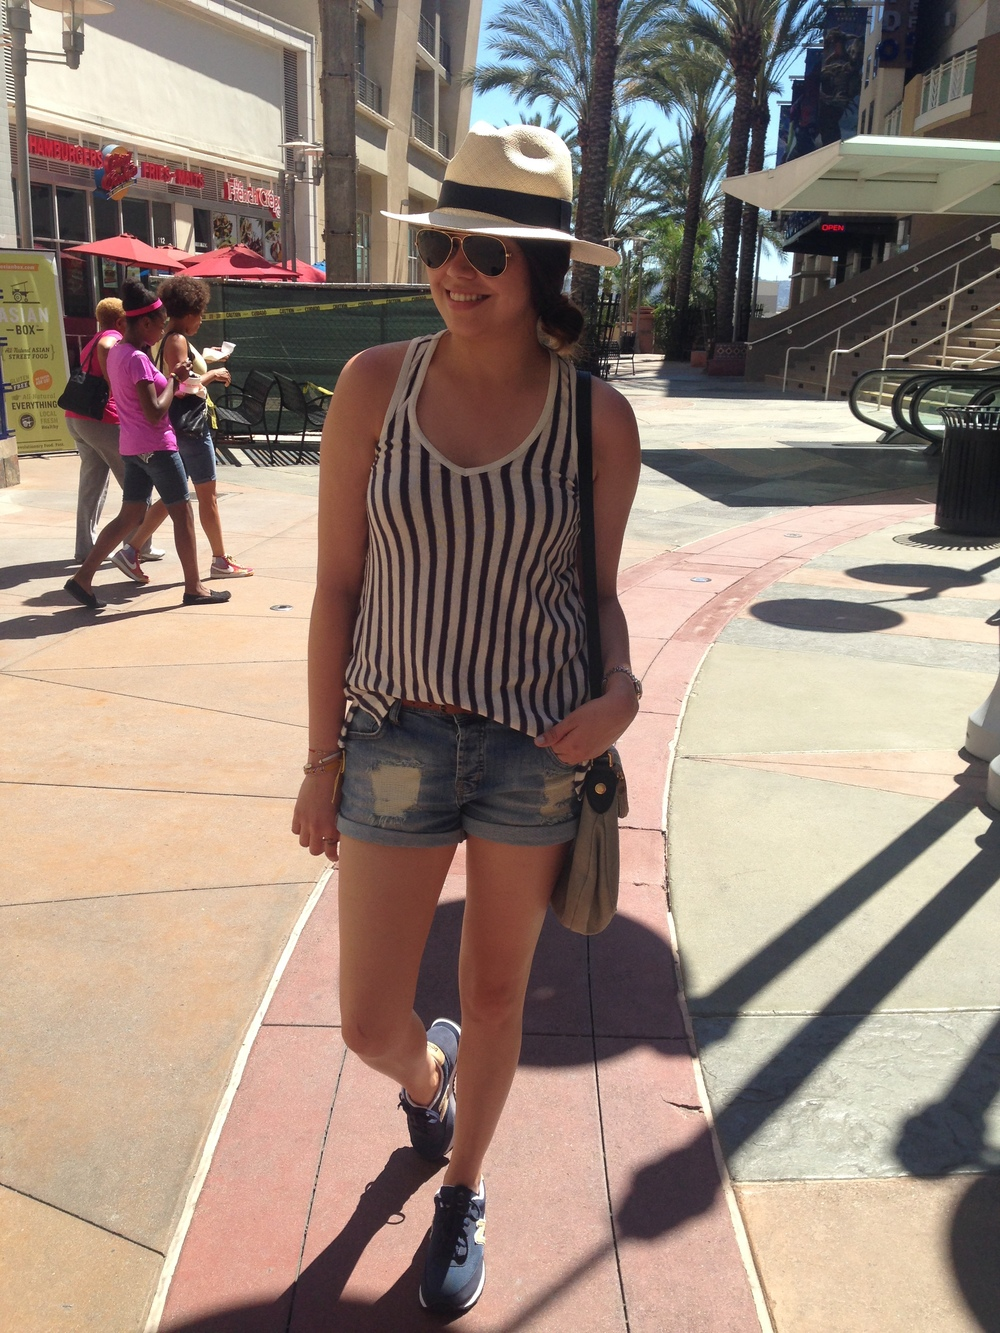 walking downtown burbank to the movie theater!